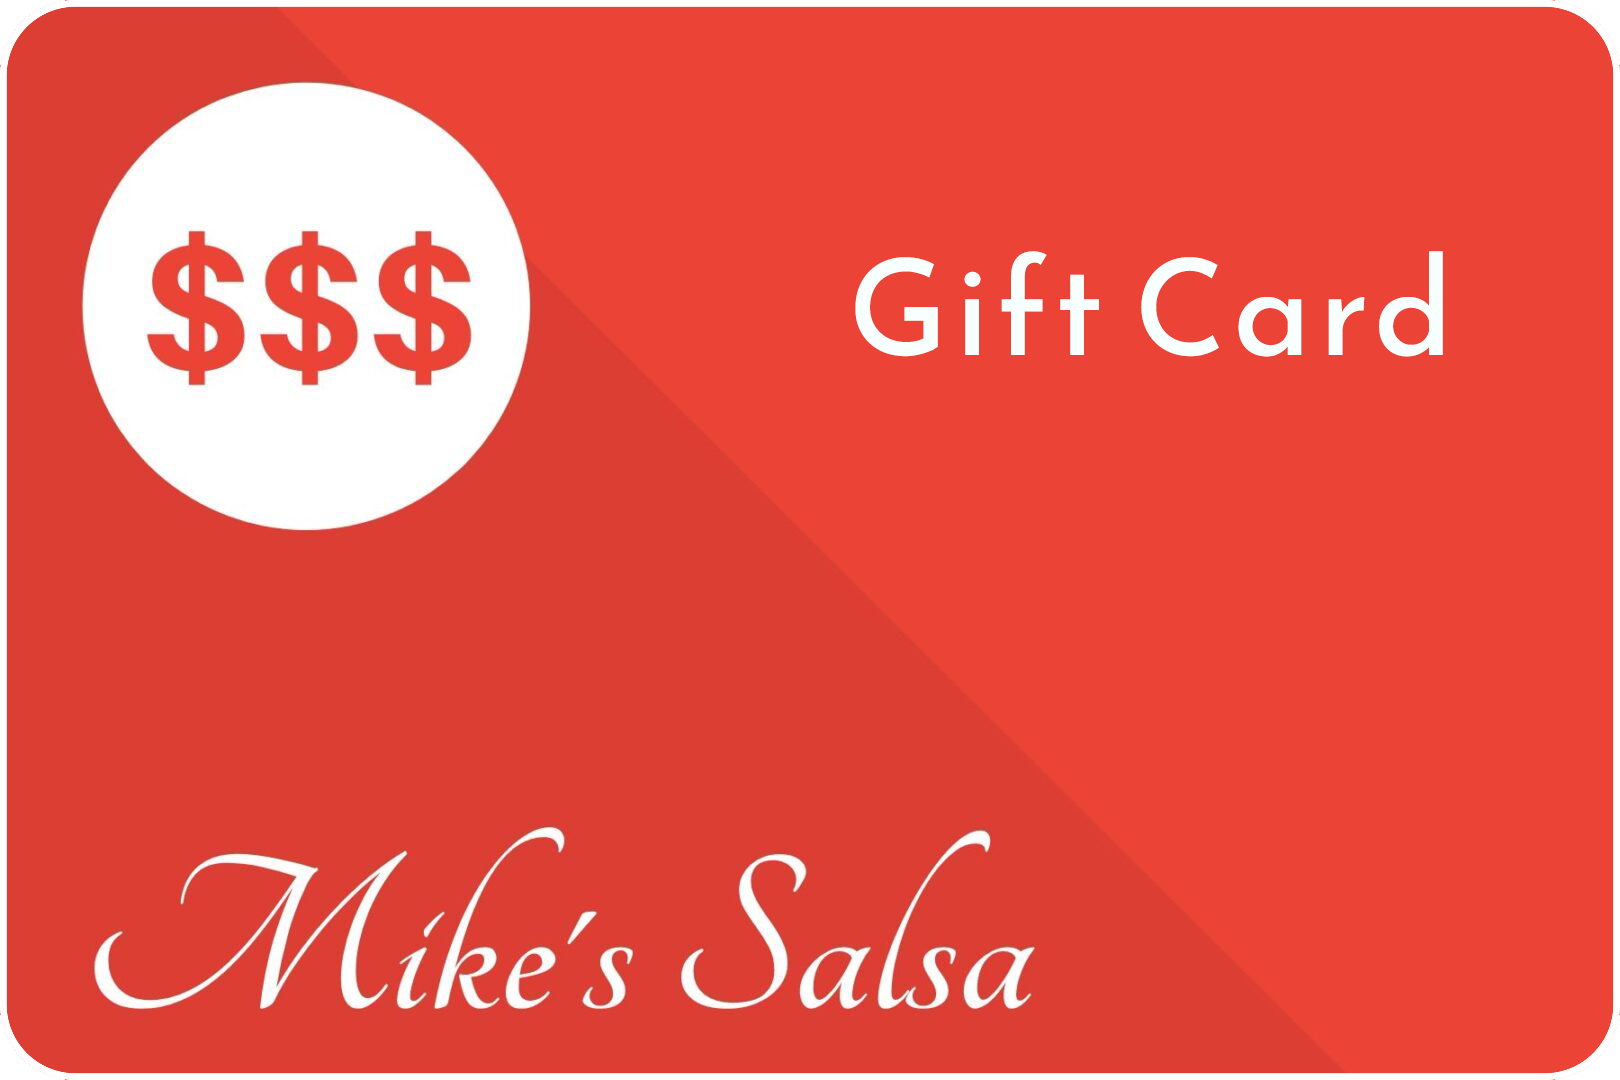 Mikes-Salsa-Gift-Card-F-Blank-Rounded